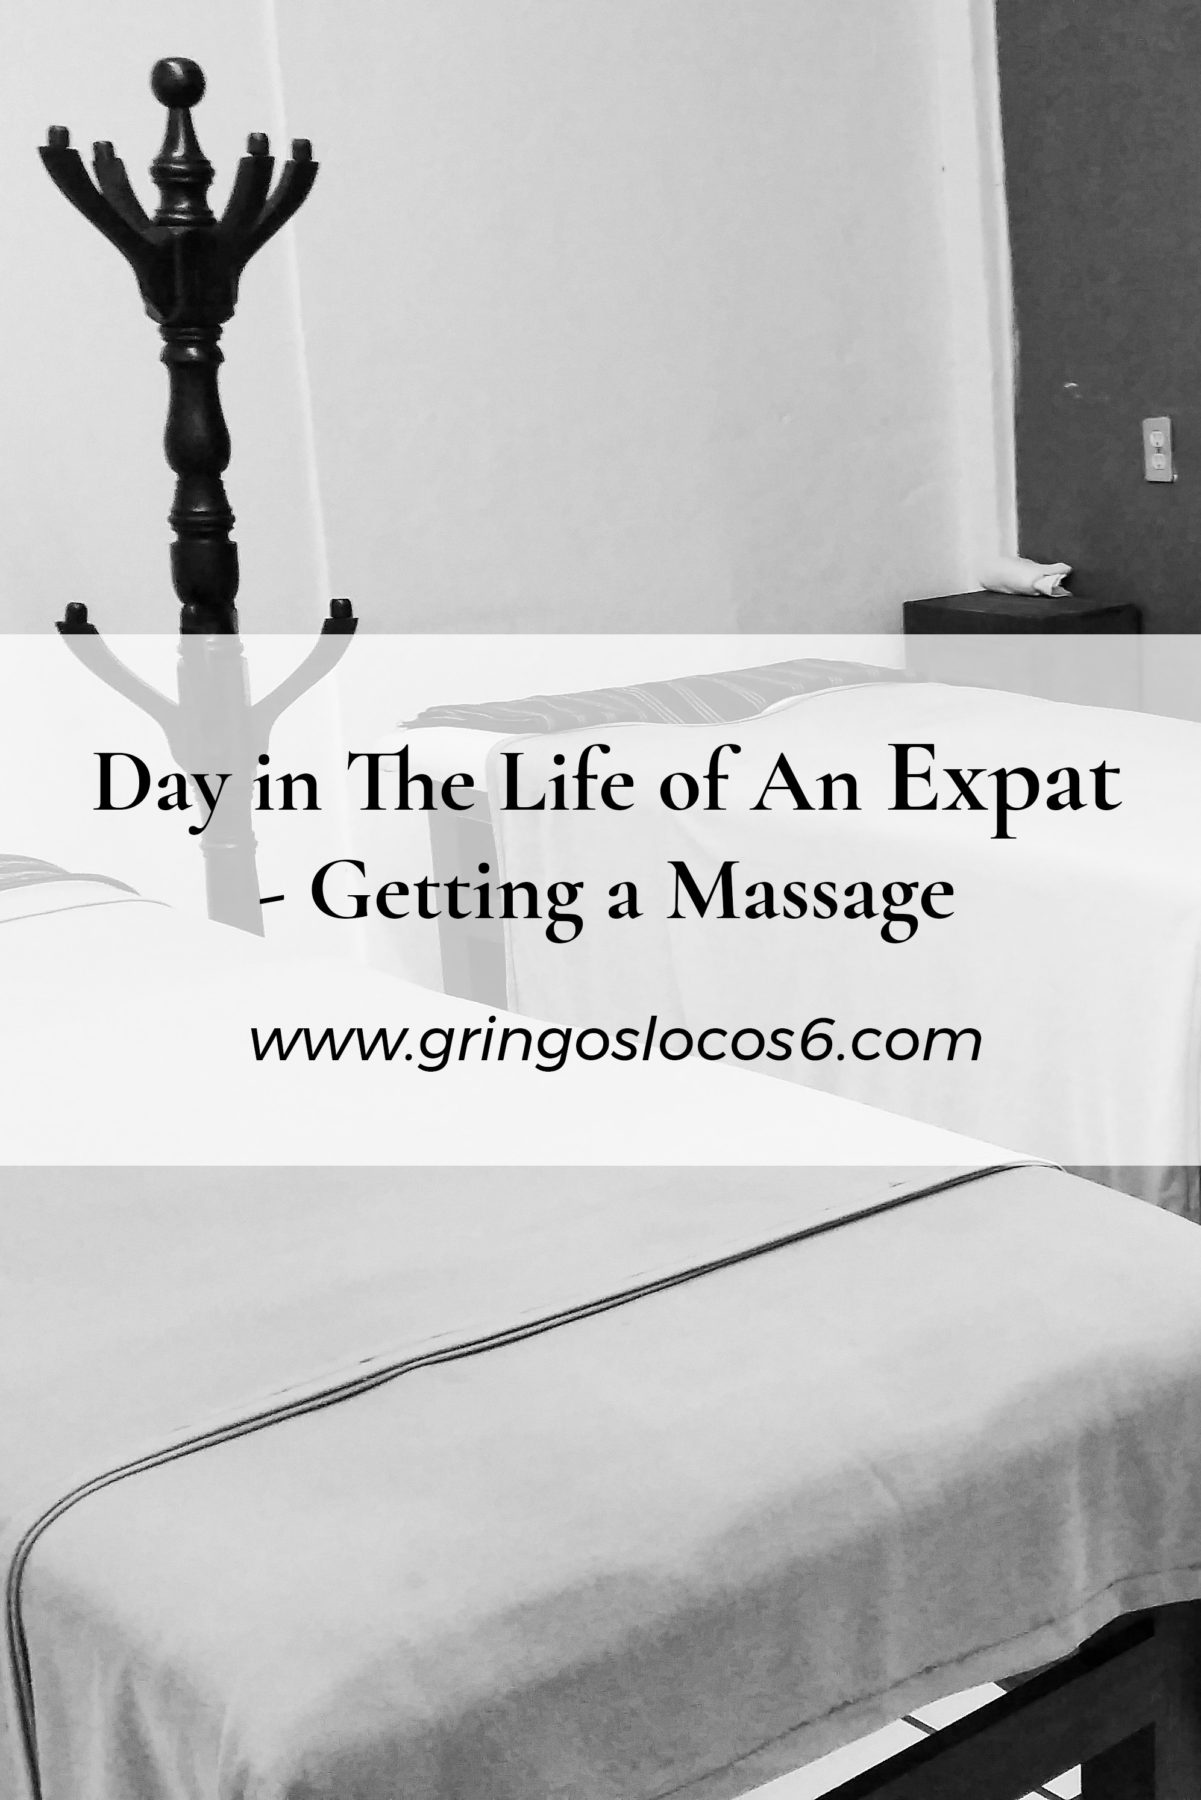 What is it like getting a 250 peso massage as an expat in Mexico? See for yourself in this photoblog of our bi-weekly couple's massage therapy :-)